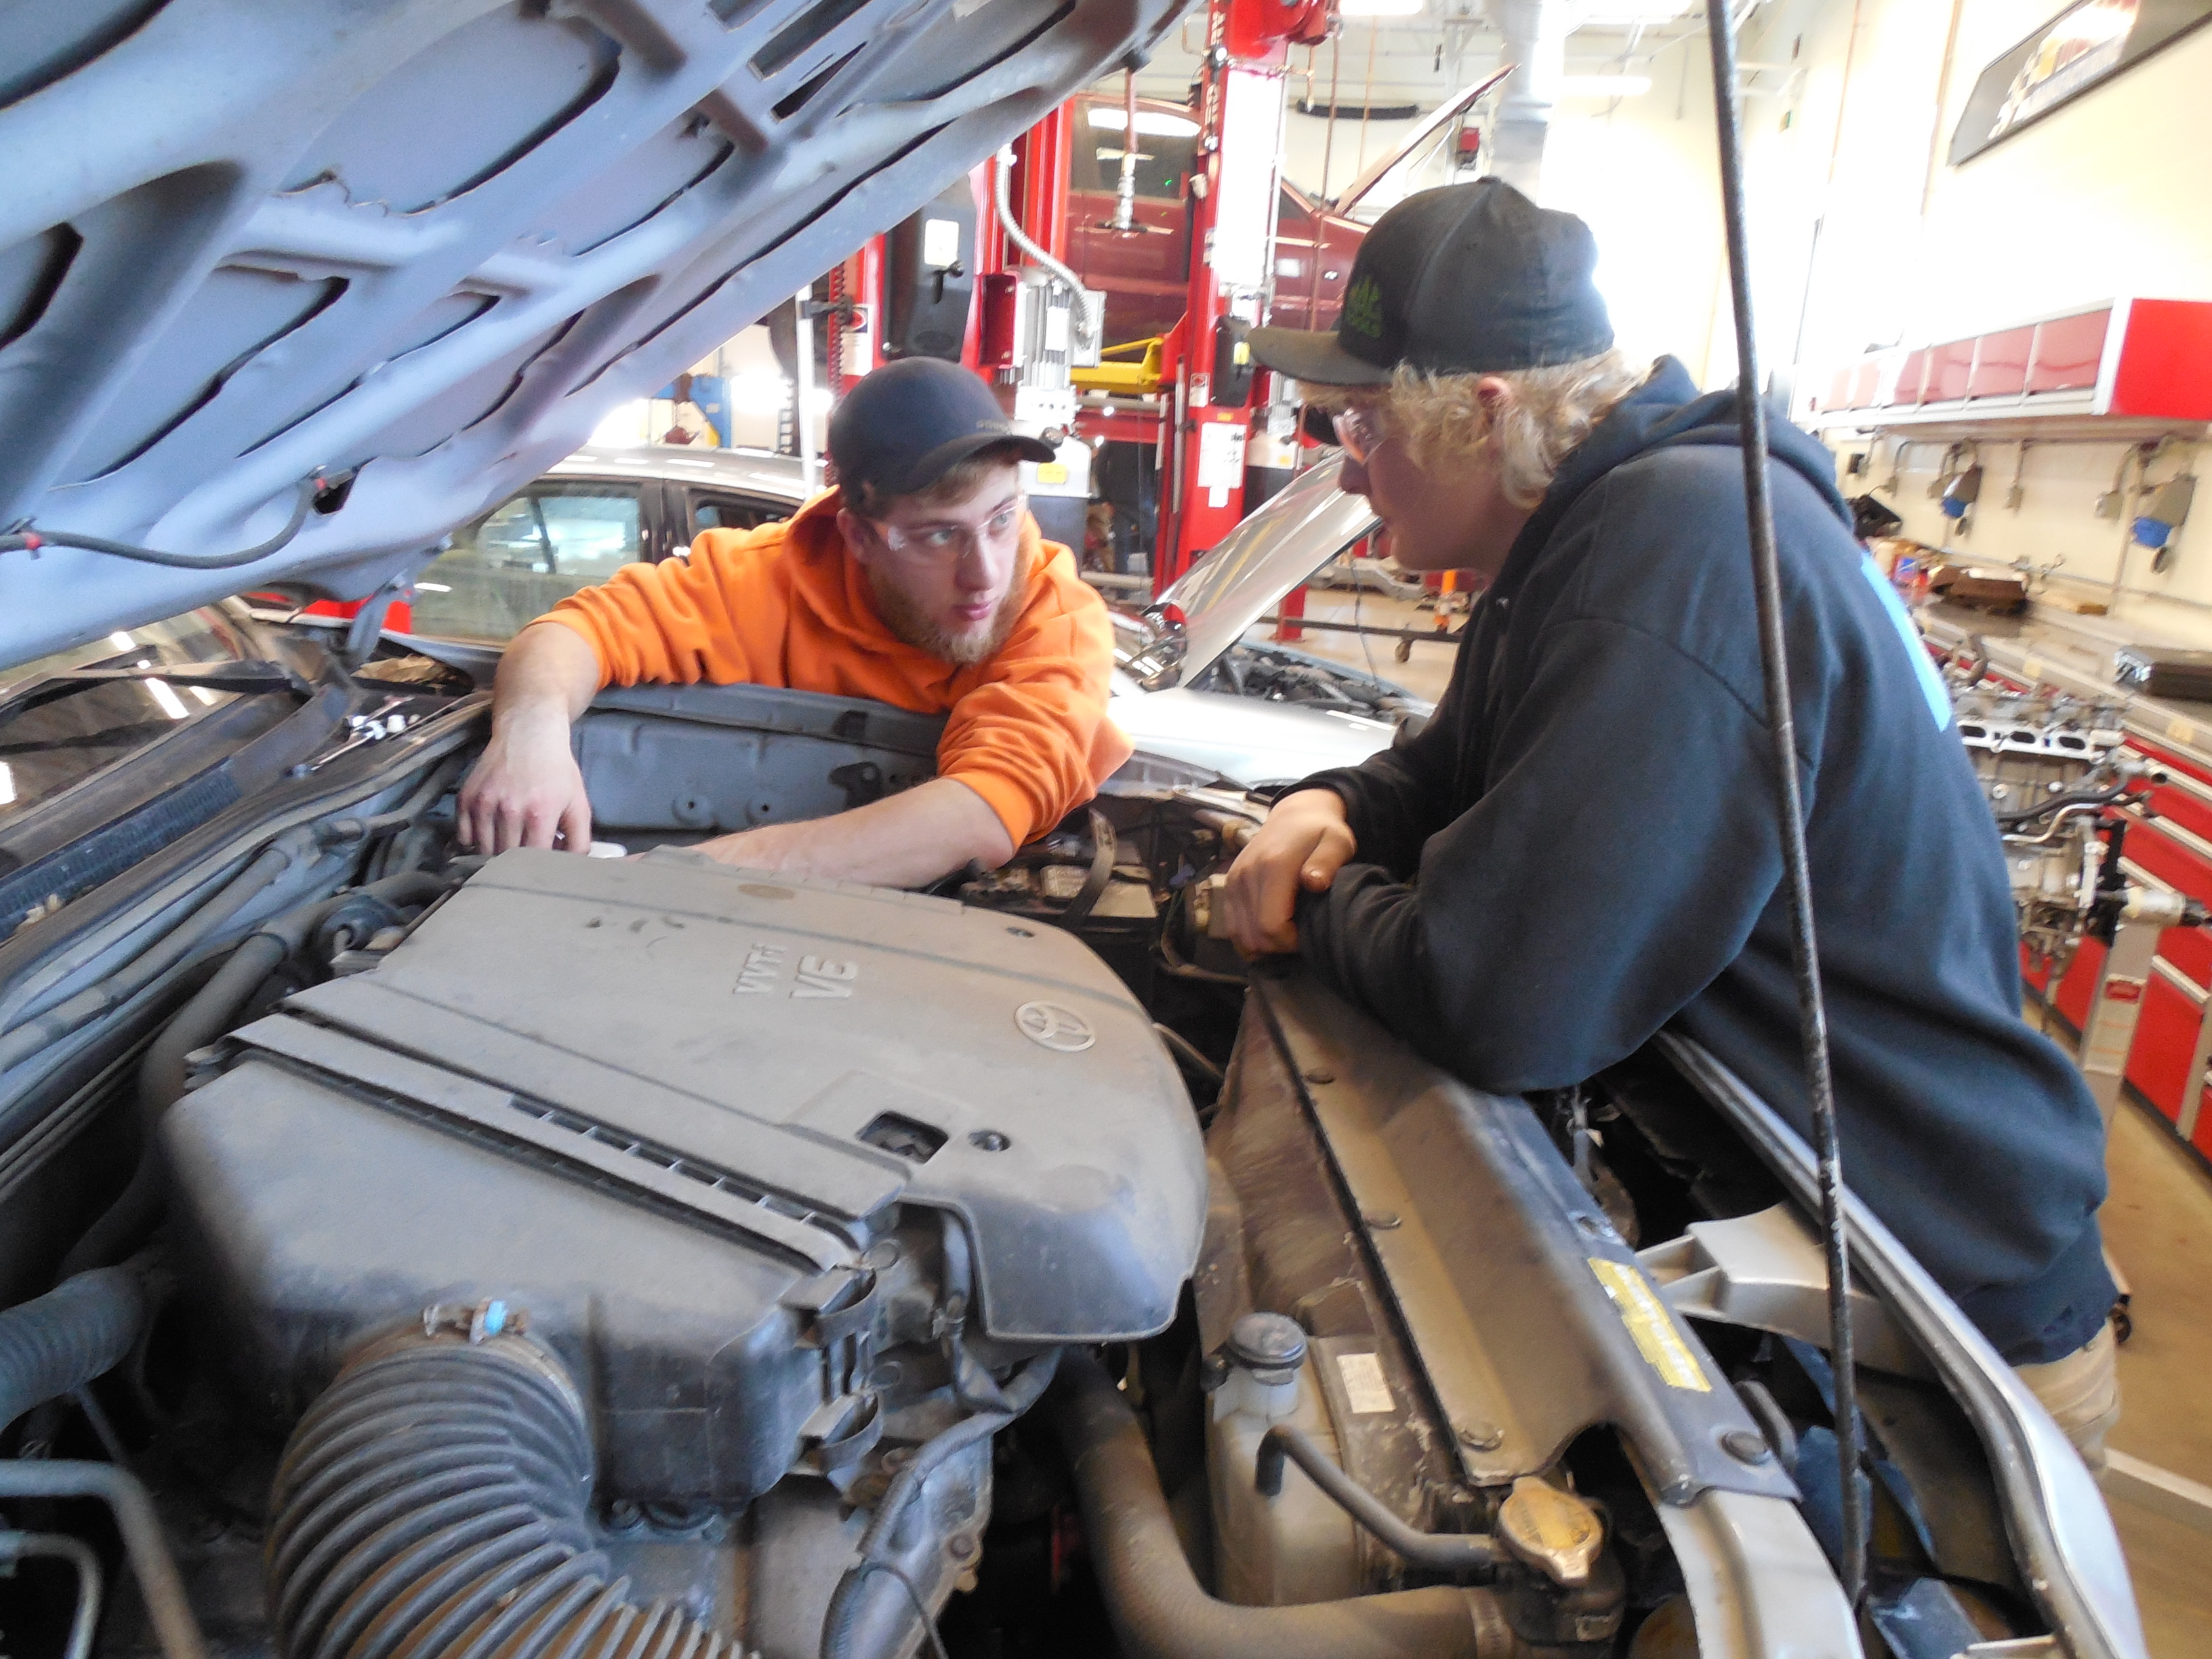 Automotive students in Wisconsin's Wausau School District (below) benefit from a close relationship with local industry that allows them to participate in apprenticeships.